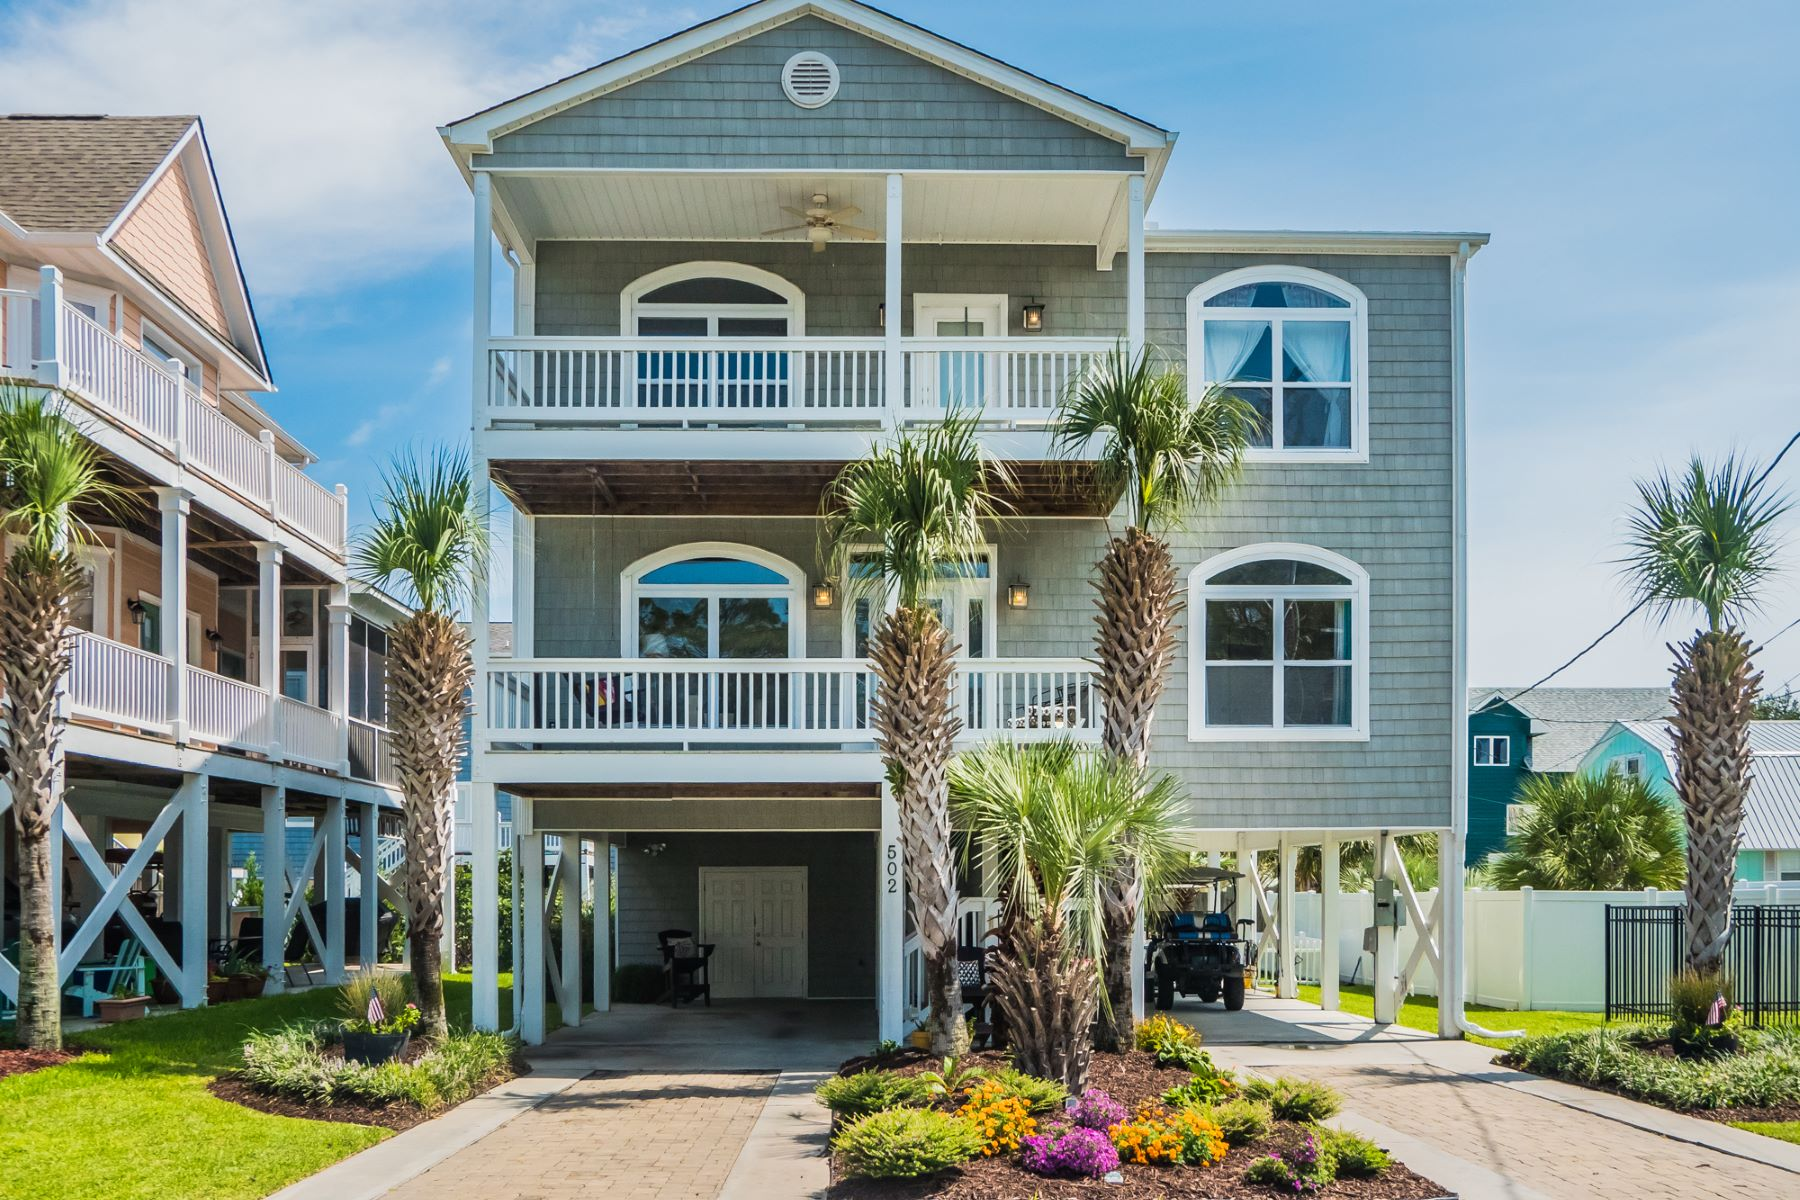 Single Family Home for Sale at Modern Specious Coastal Living 502 21st Ave N North Myrtle Beach, South Carolina, 29582 United States